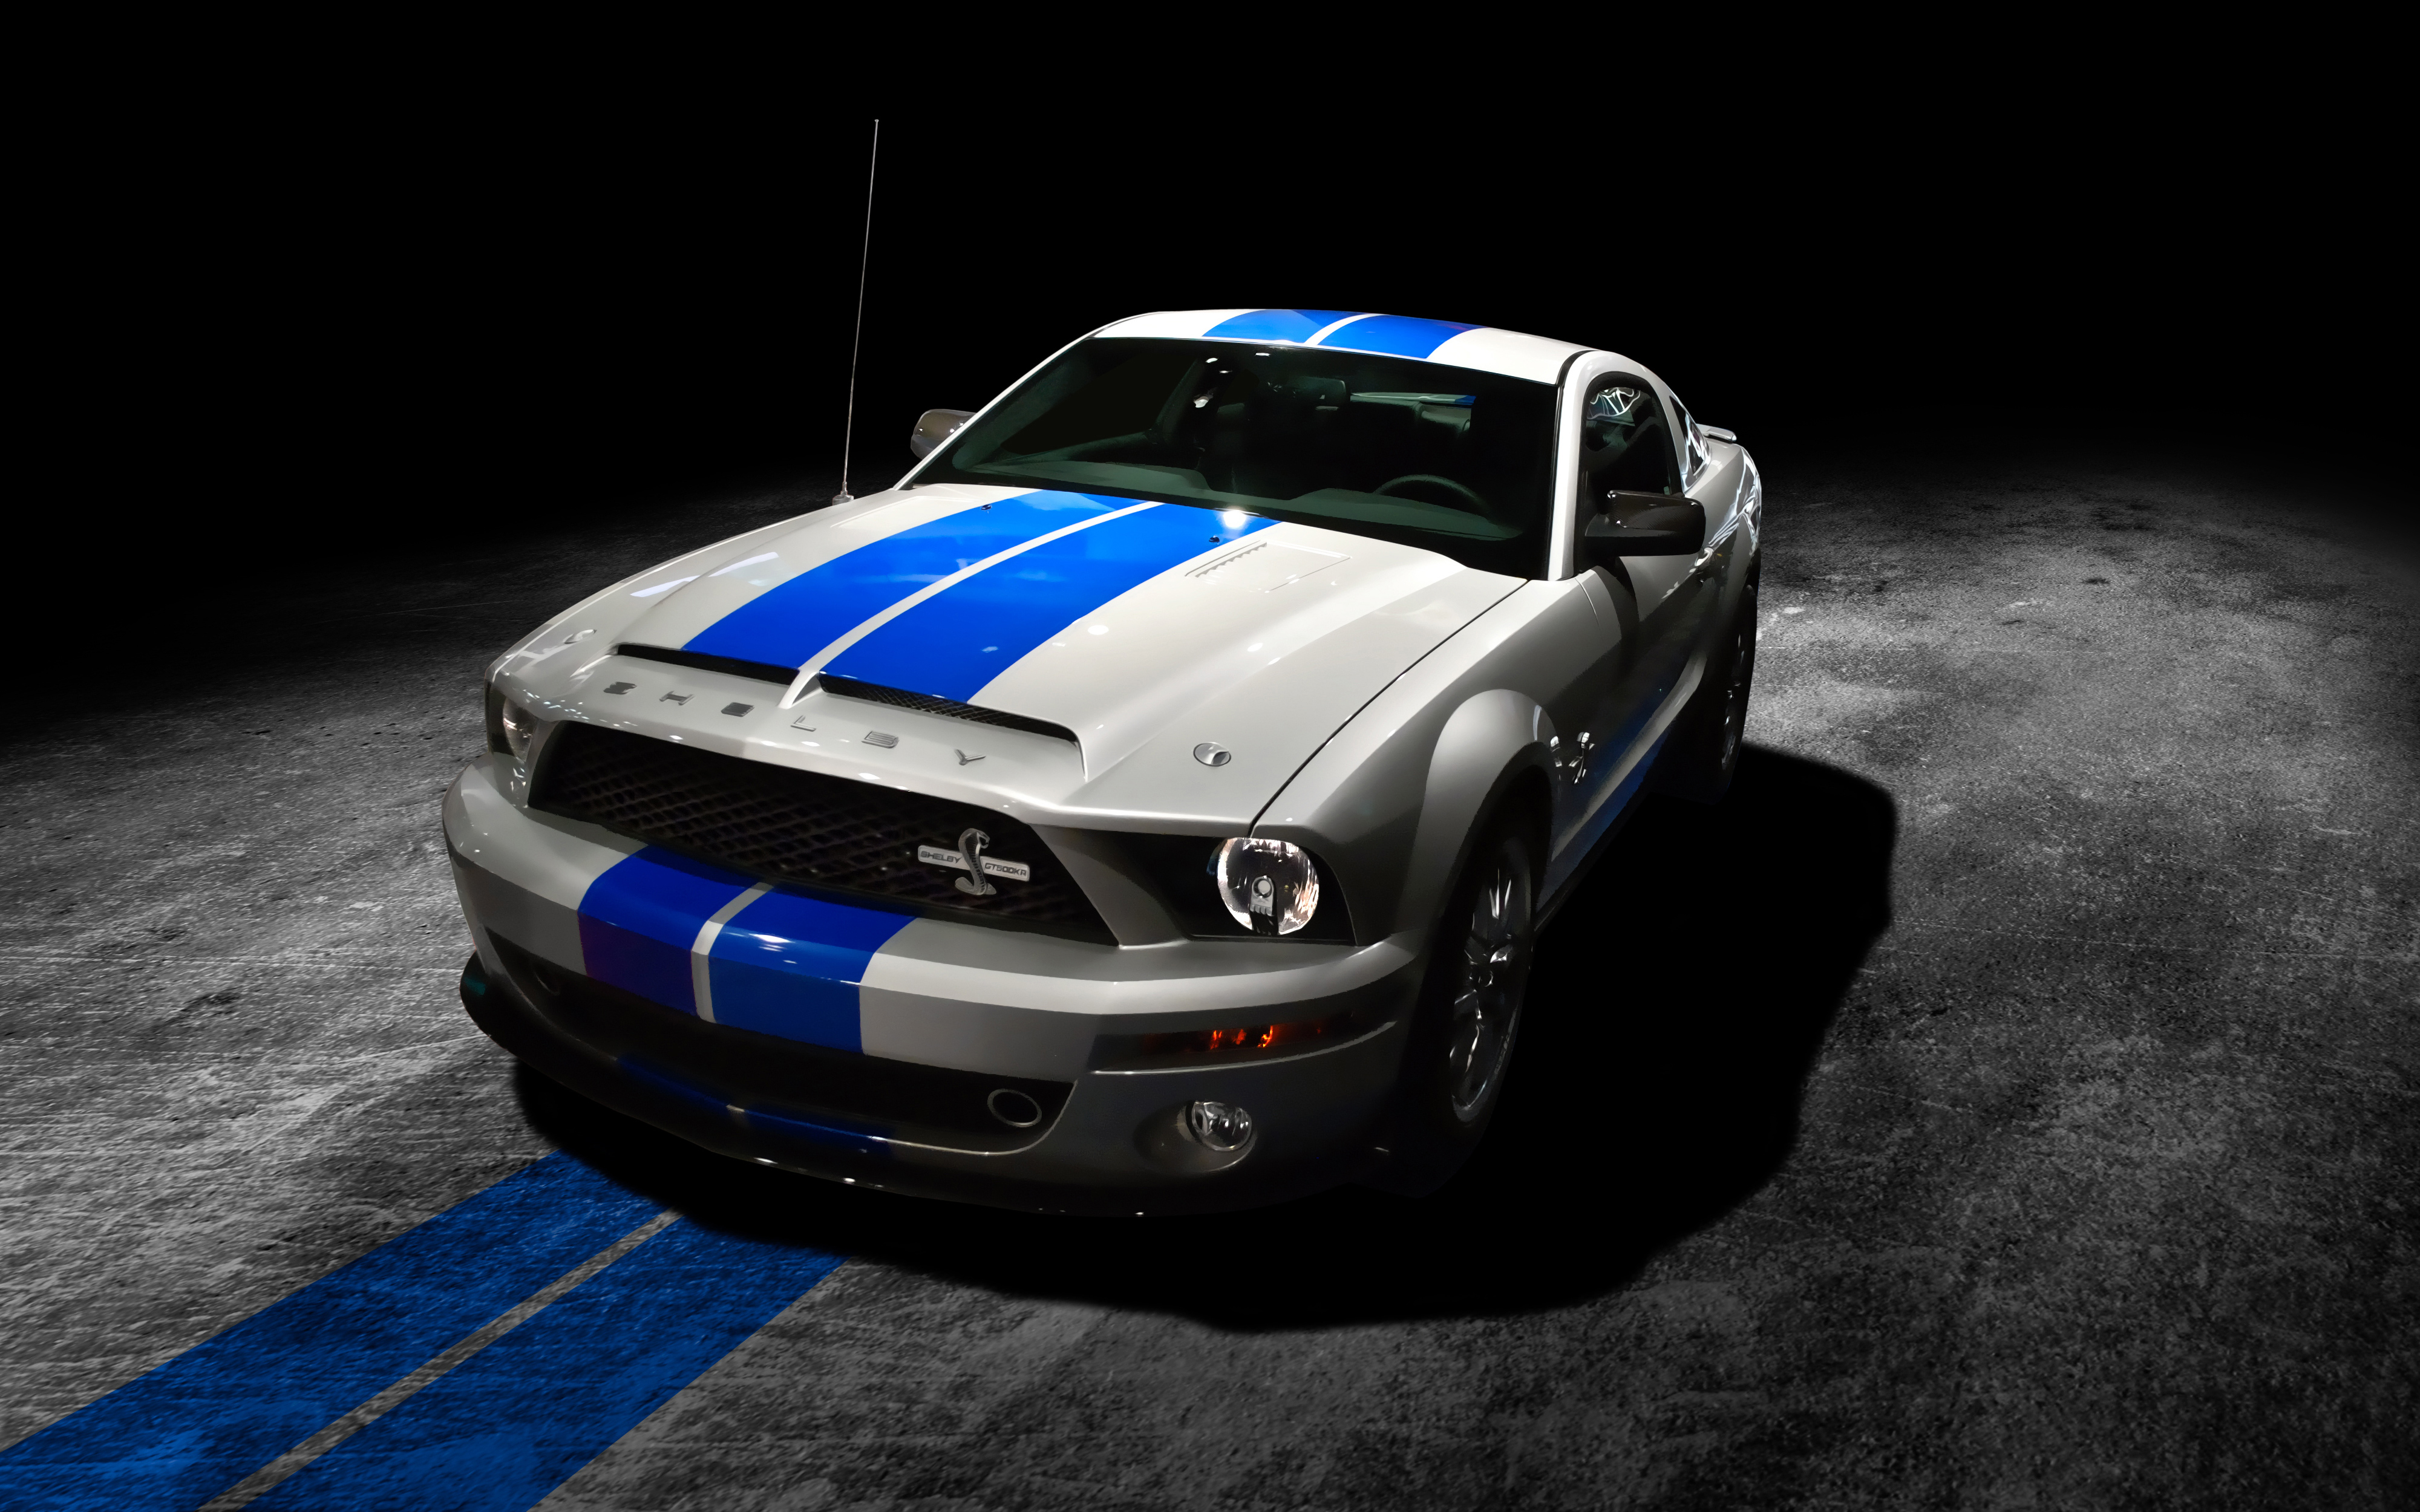 2013 Ford Mustang Shelby GT500KR